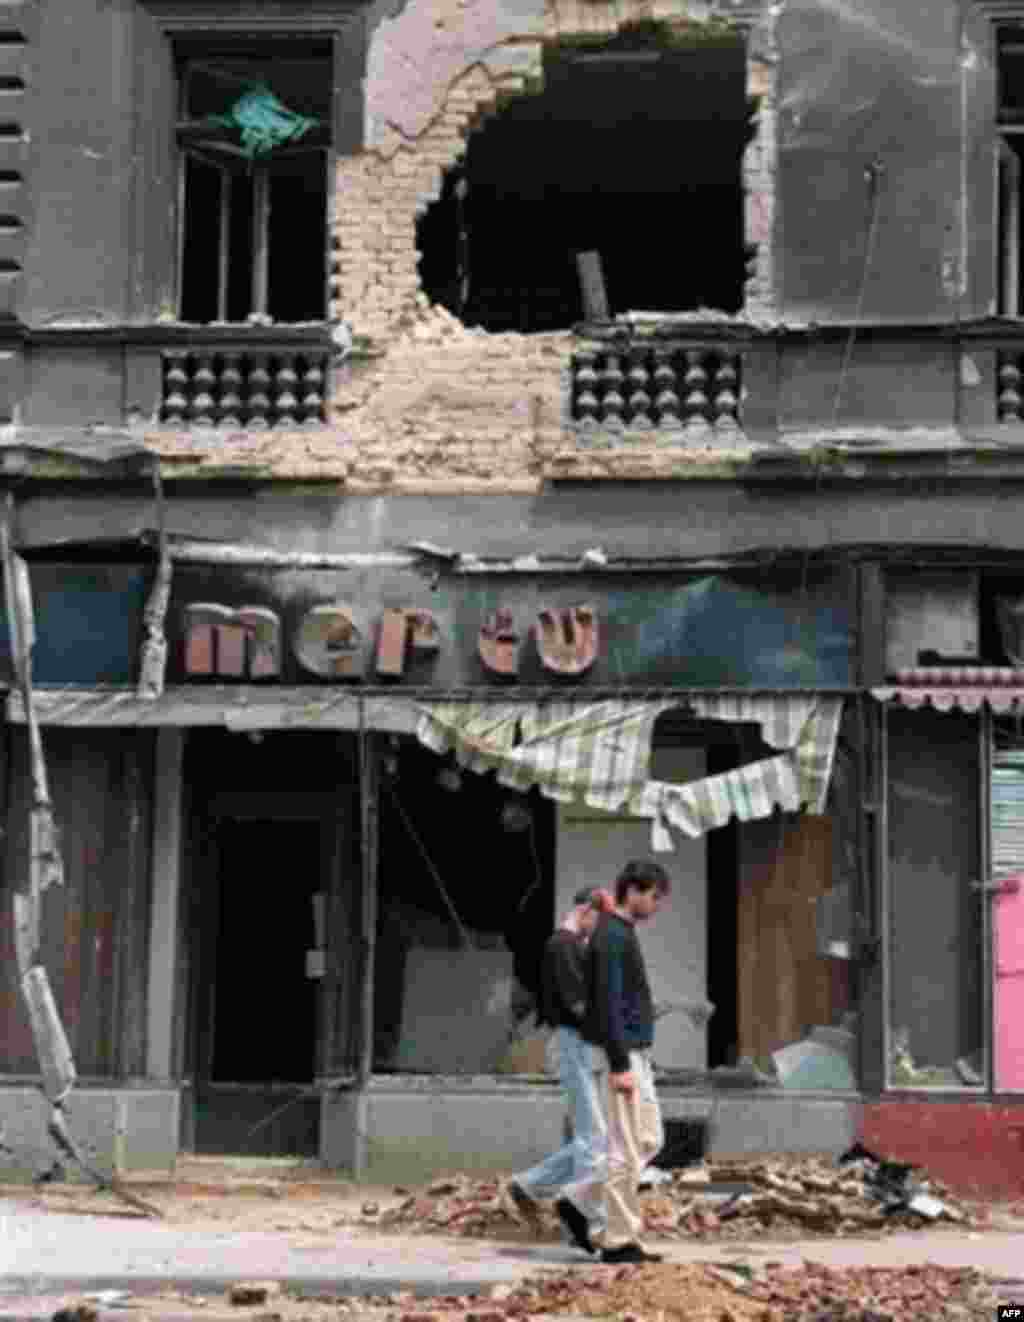 Two residents of Sarajevo walk past a destroyed building on Marshal Tito Avenue in June 1992 - The UN's International Criminal Tribunal for the former Yugoslavia has charged Karadzic with being responsible for his army's shelling of parts of Sarajevo and attacks on civilians during a 43-month siege of the city, during which thousands were killed or wounded.